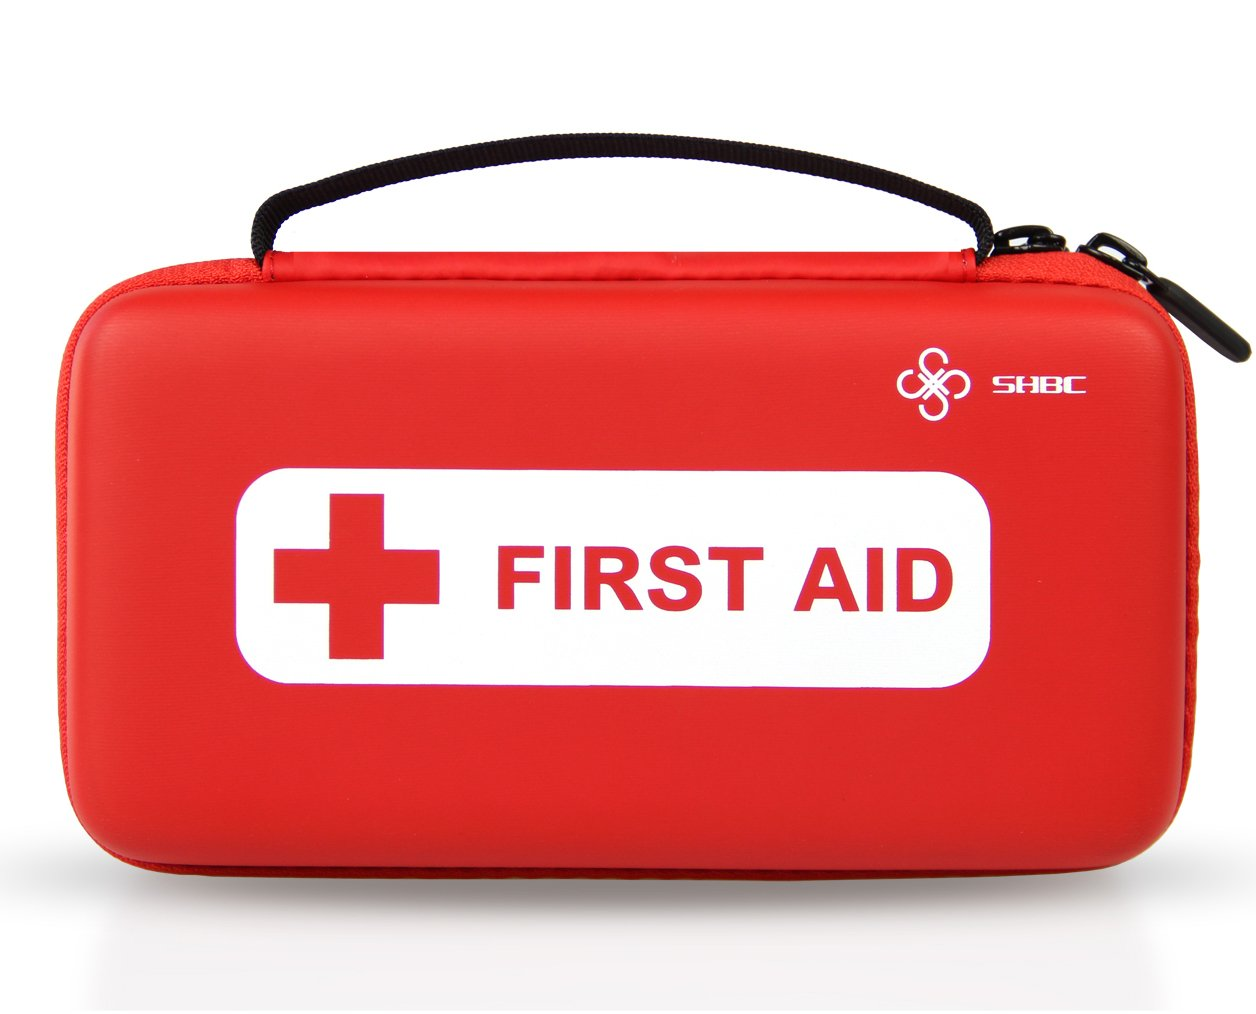 SHBC First aid kit (152 Piece) FDA Medical Supplies Small Waterproof Emergency at Home, Outdoors, Boat, Car, Camping, Workplace, Travel, Hiking & School; Survival.